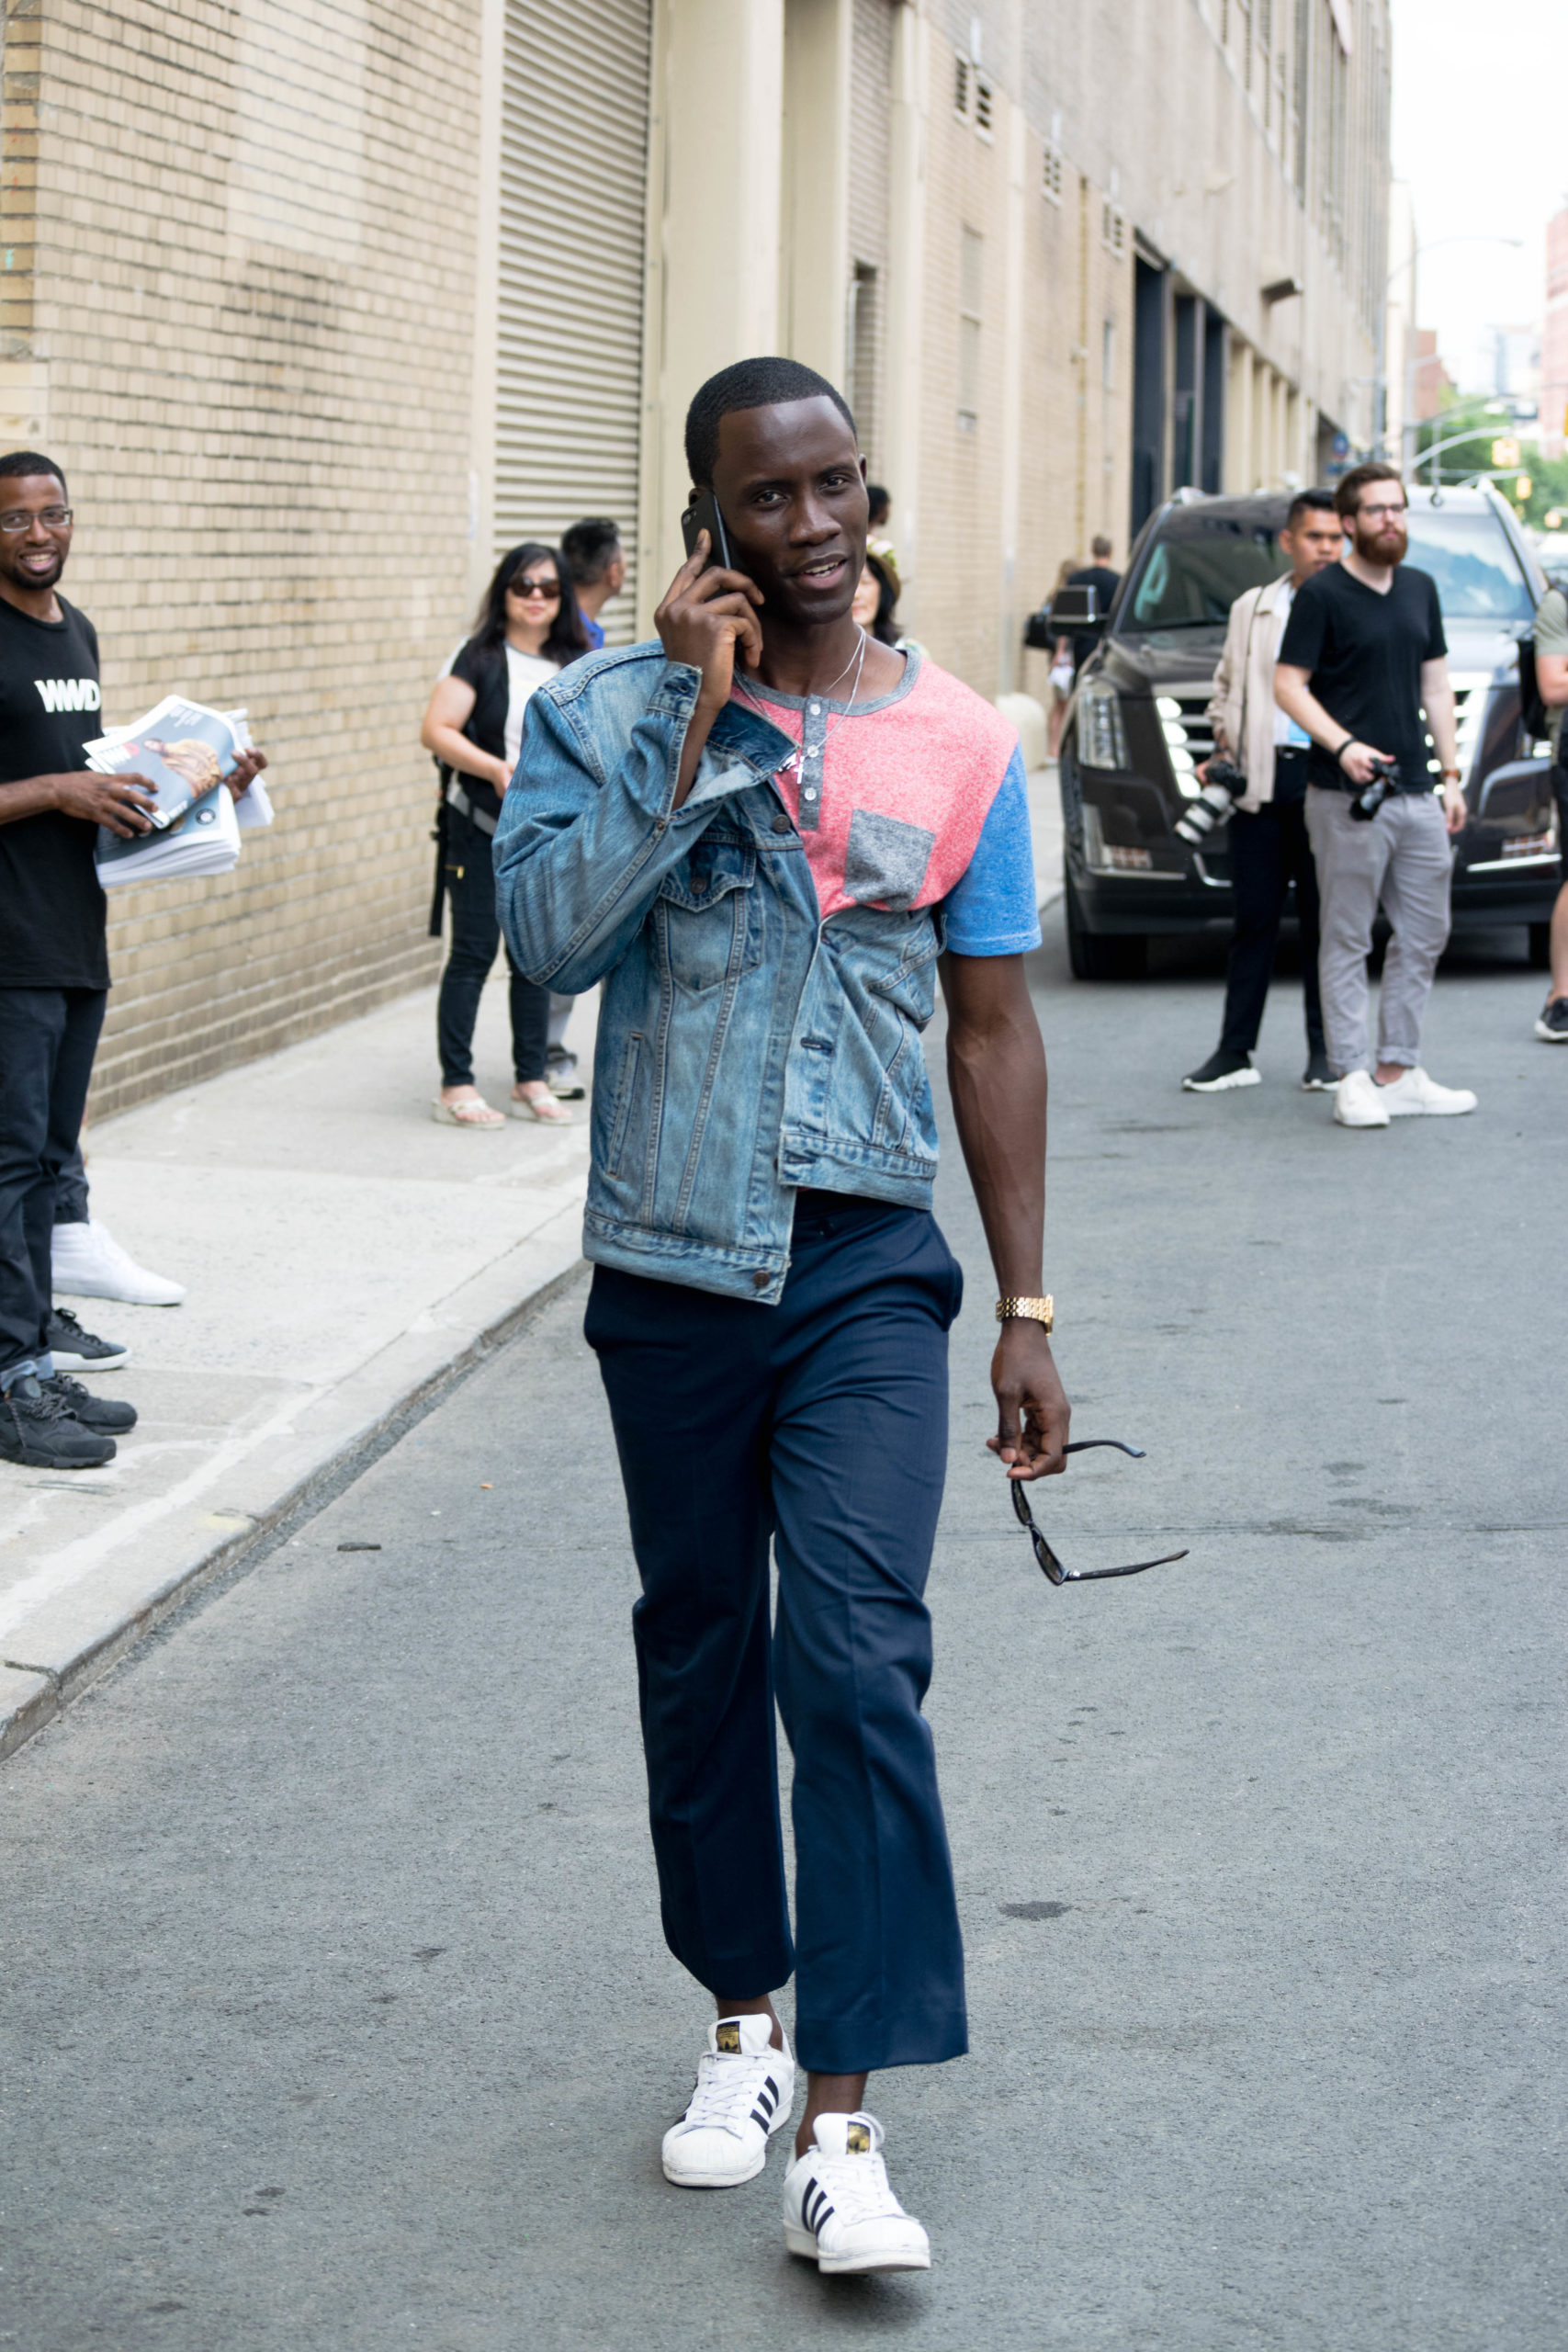 Street Fashion: New York Men's Fashion Week 2017 - FilterGrade Blog